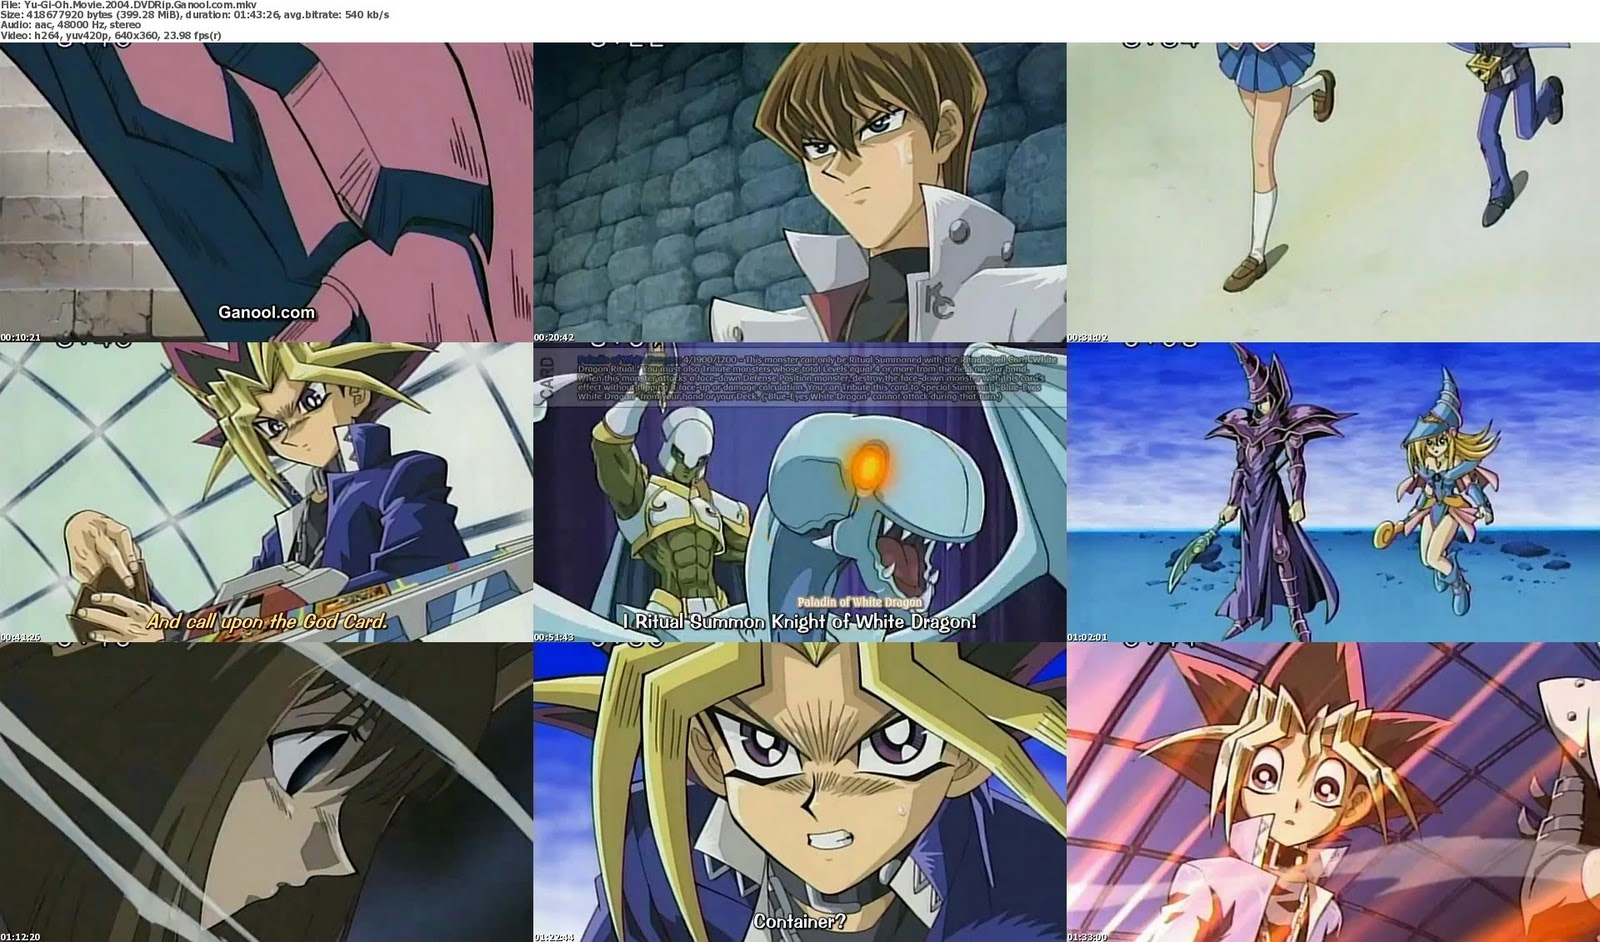 Yu-Gi-Oh! - The Movie (High Quality) MKV DVDRip (Pyramid Of Light)